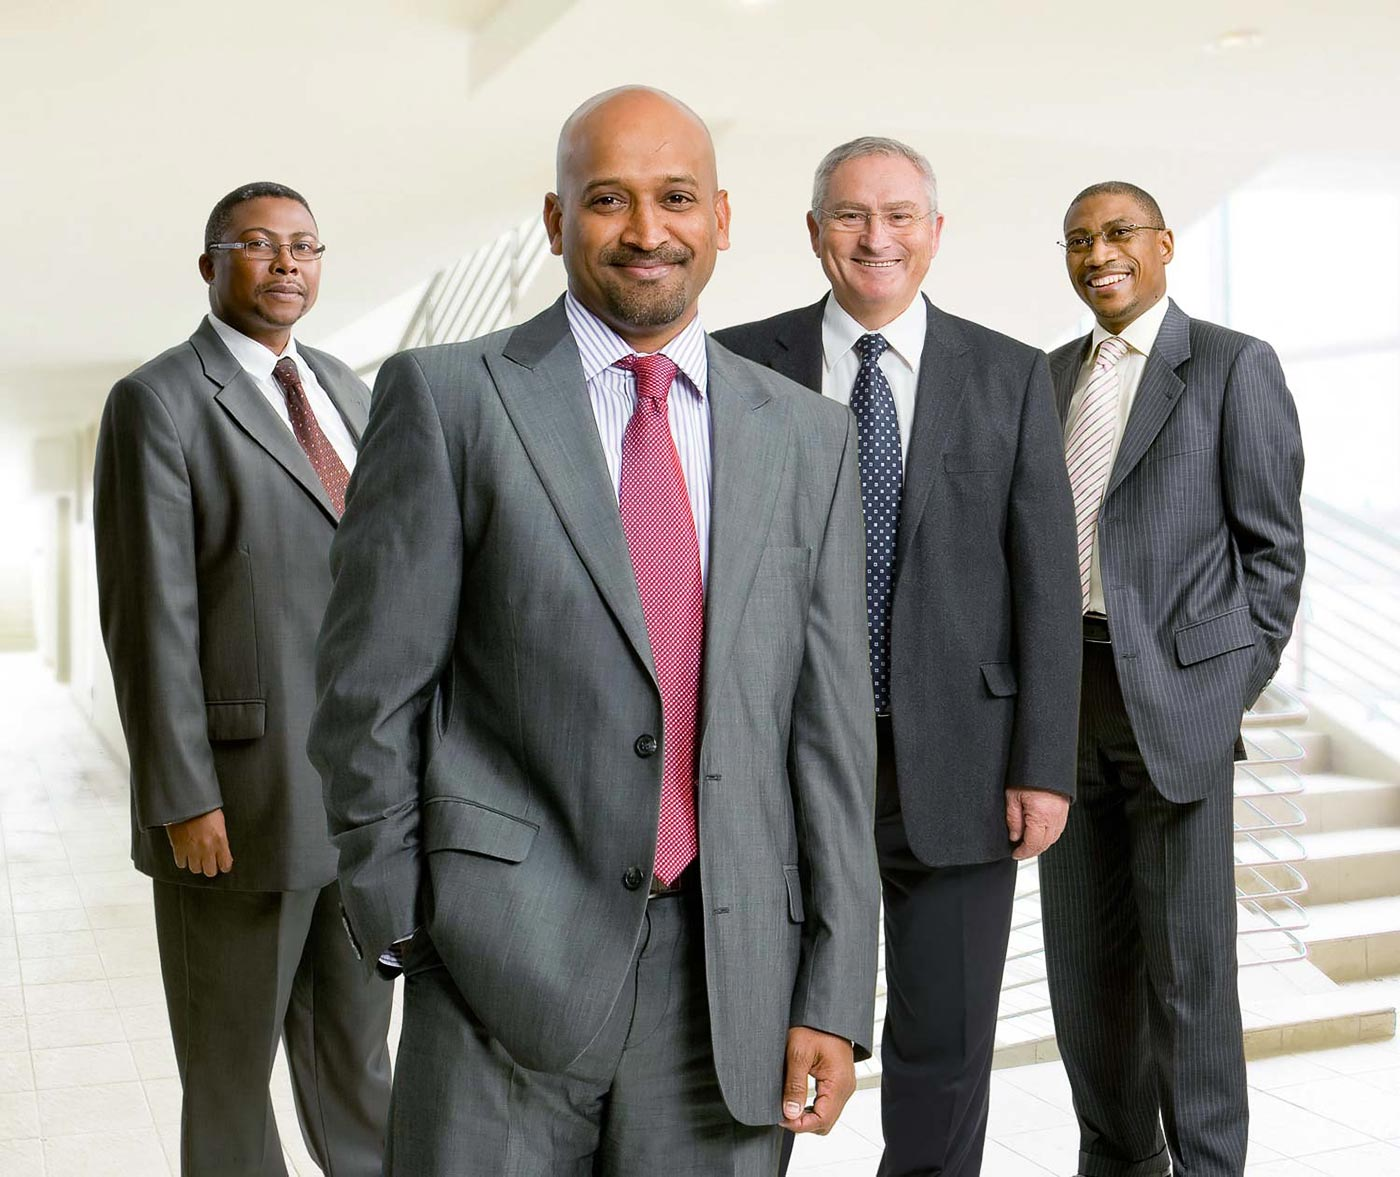 Board of directors for a transport company - corporate photography by Planet KB photographic studio